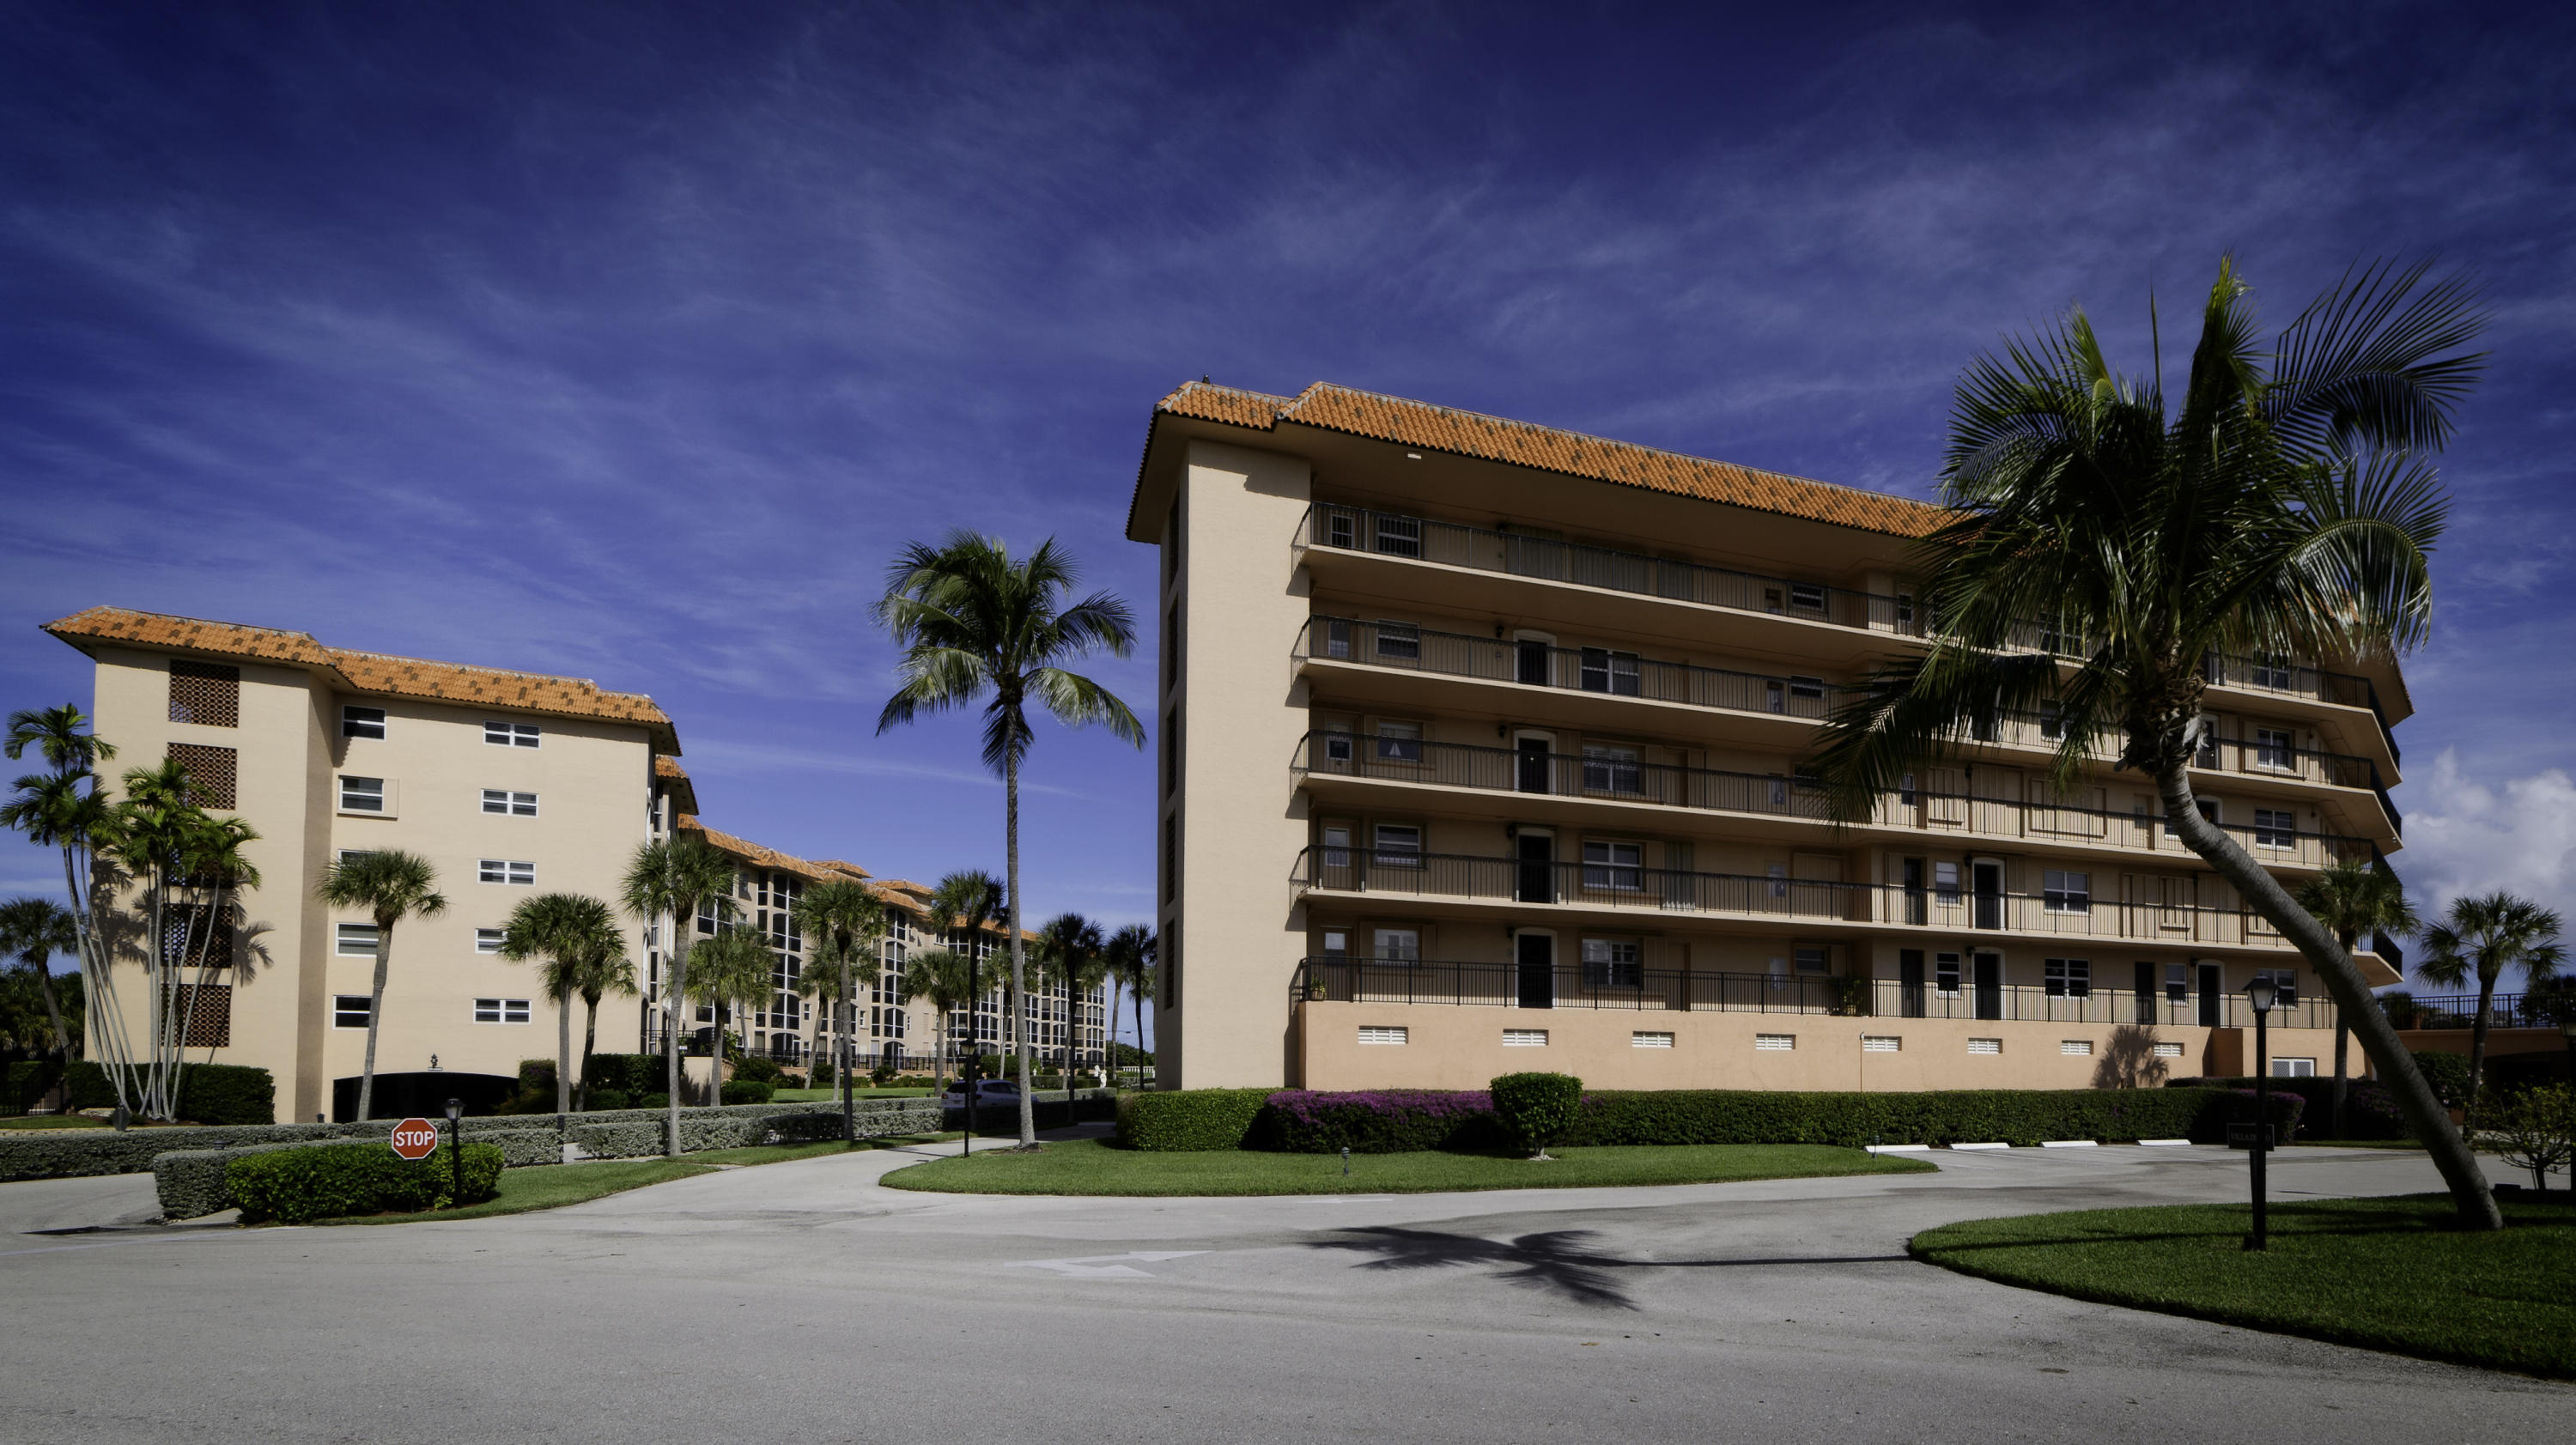 2871 N Ocean Boulevard D518 Boca Raton, FL 33431 small photo 14